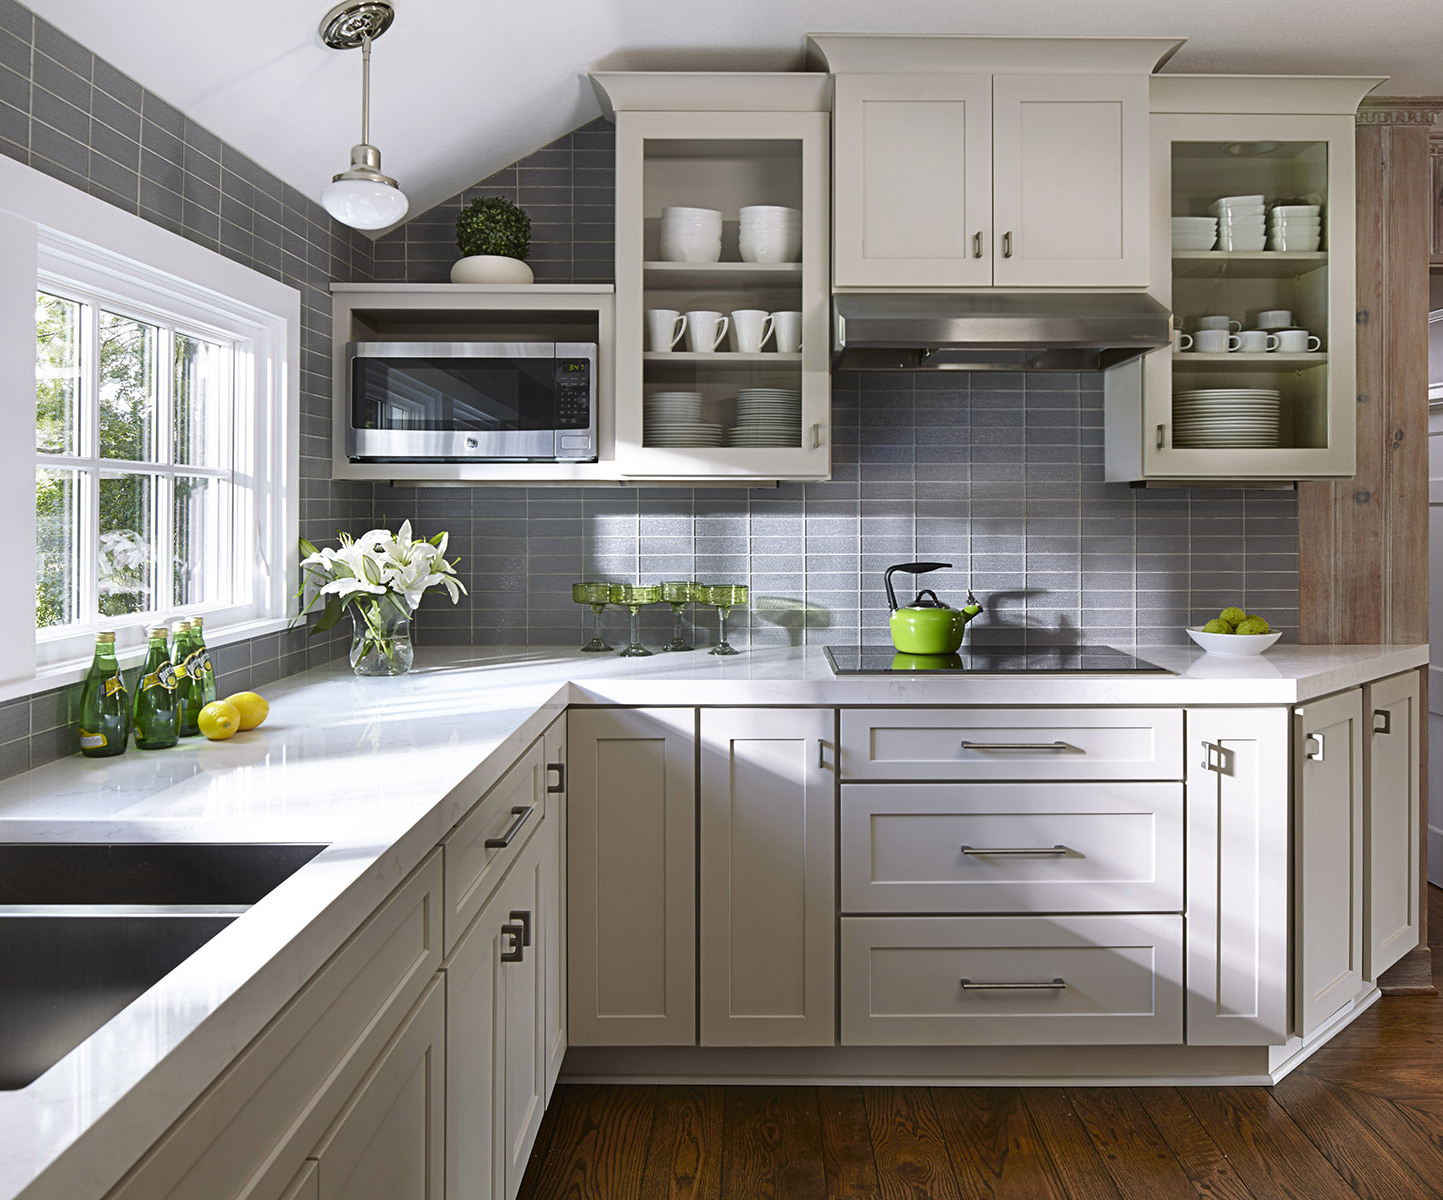 Kitchen remodel where to begin centsational style for Kitchen redo